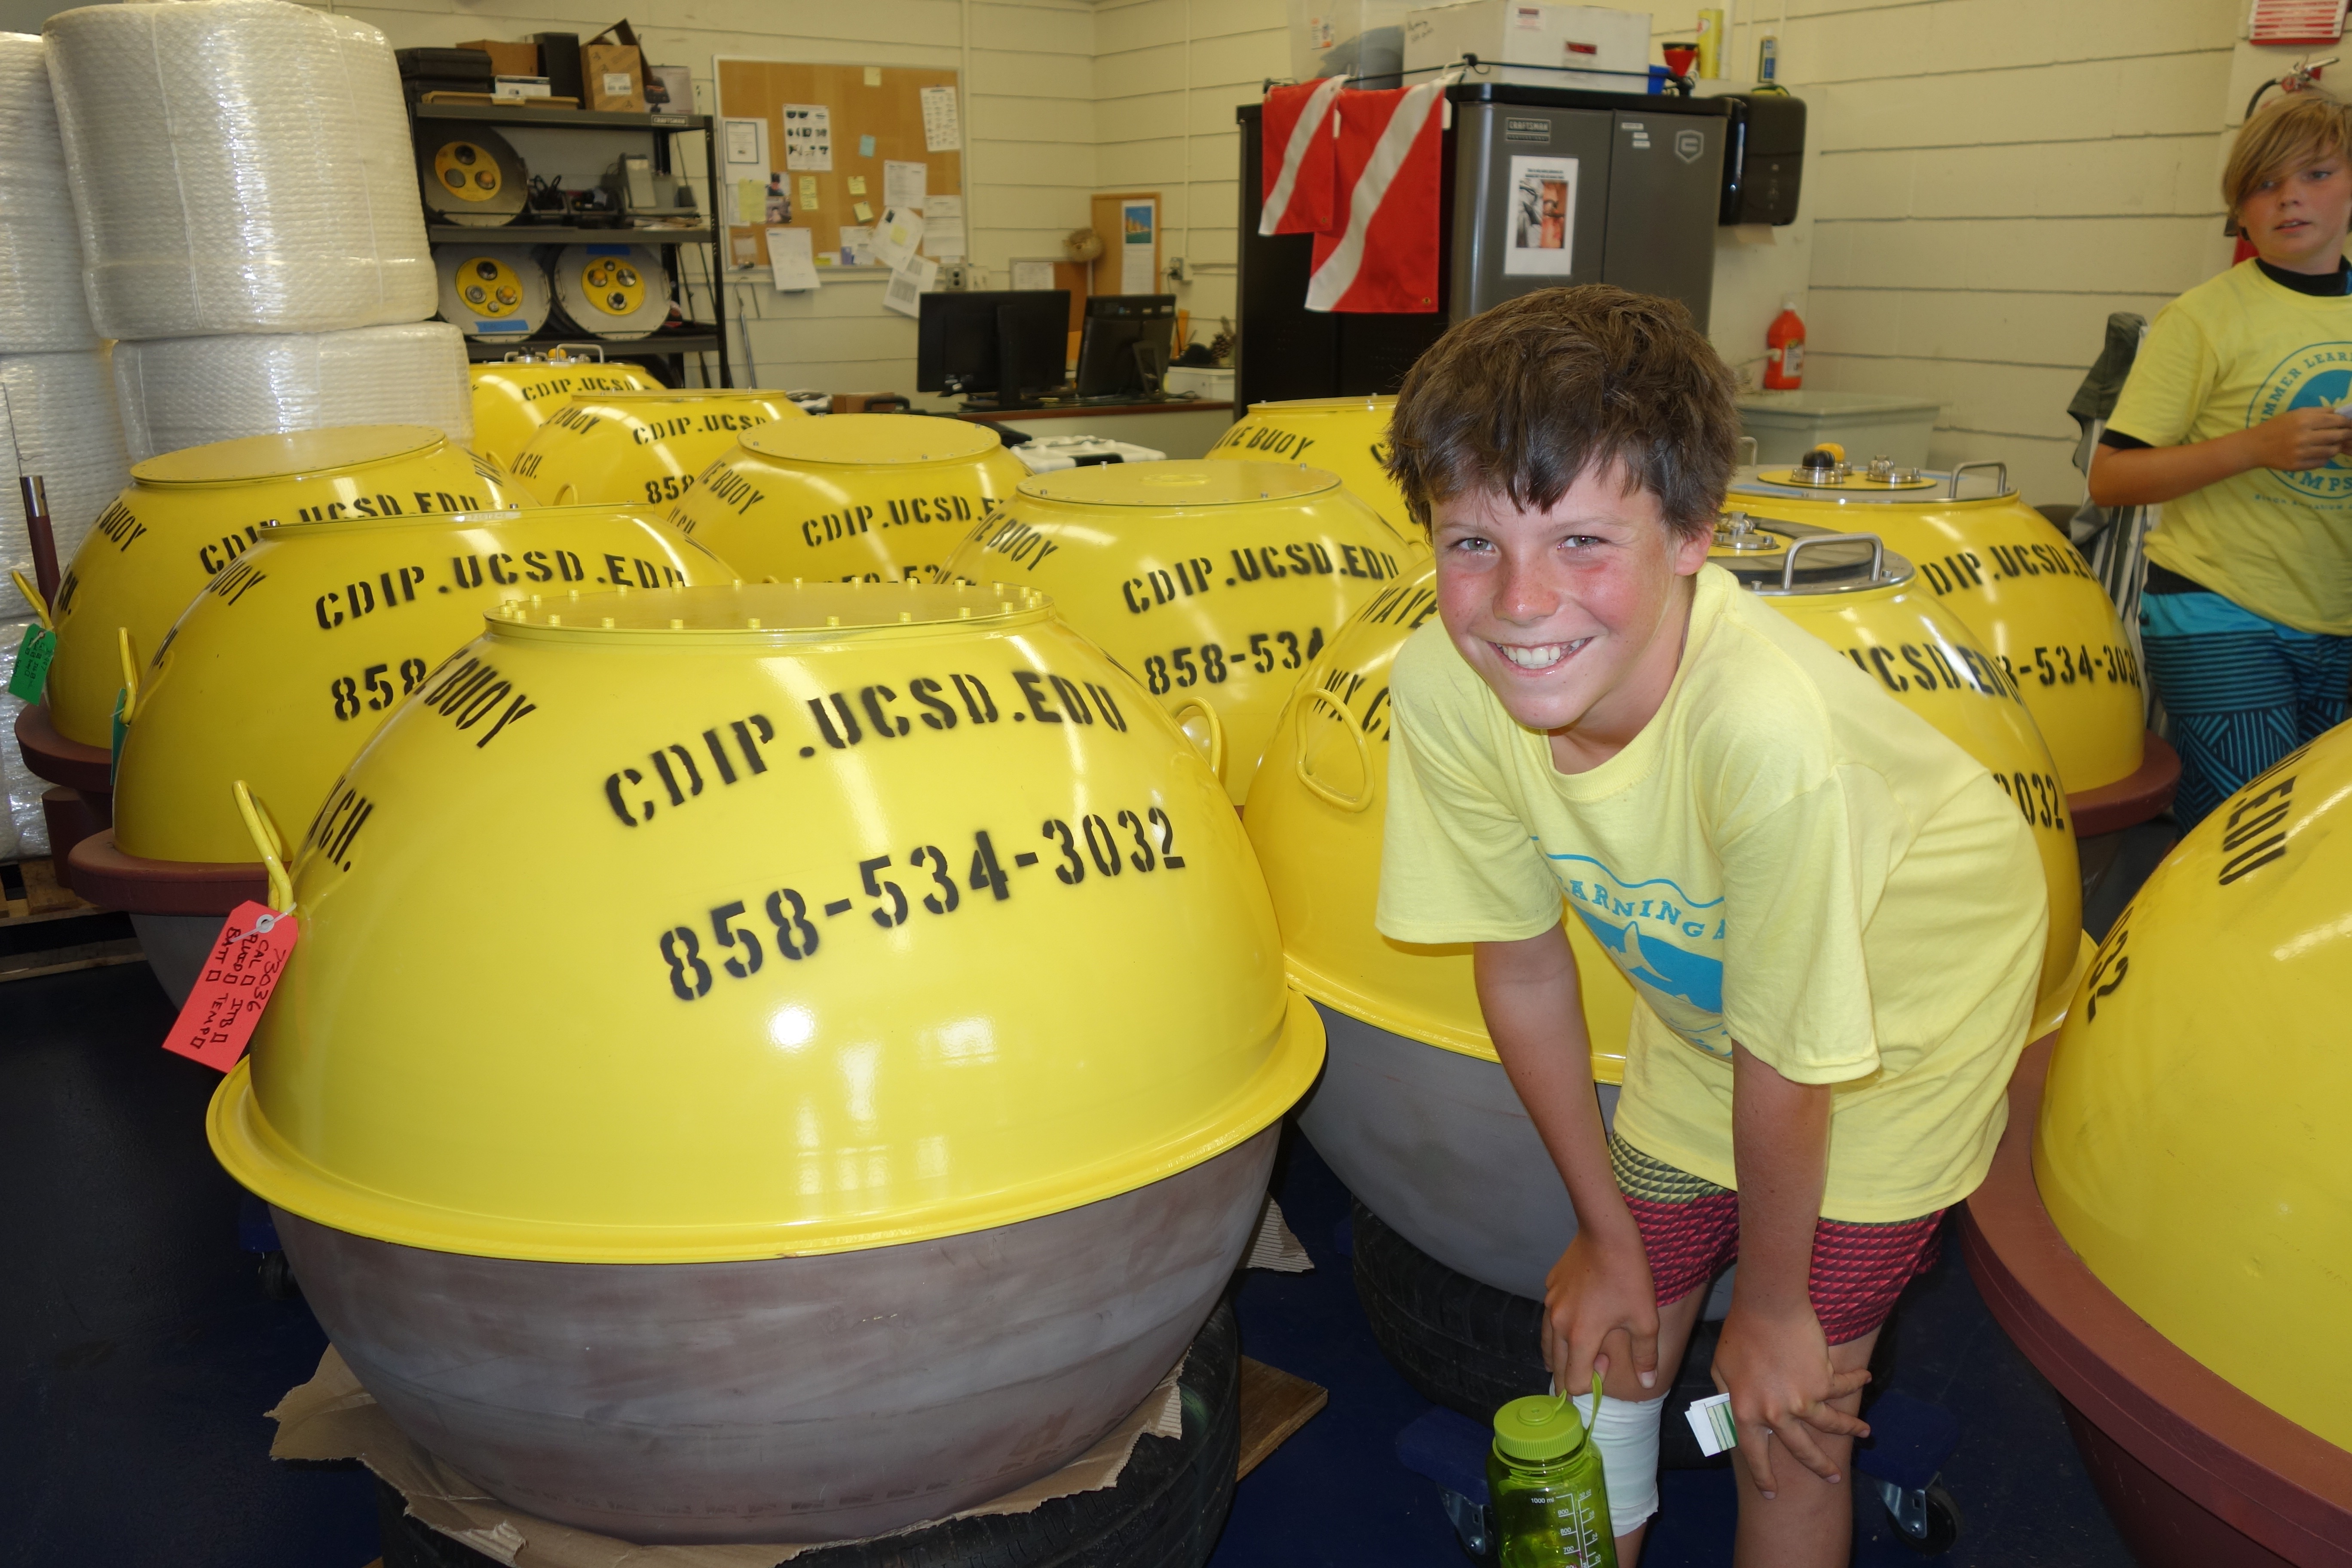 A Summer Learning Adventure camper gets up close and personal with CDIP oceanographic monitoring bouys.